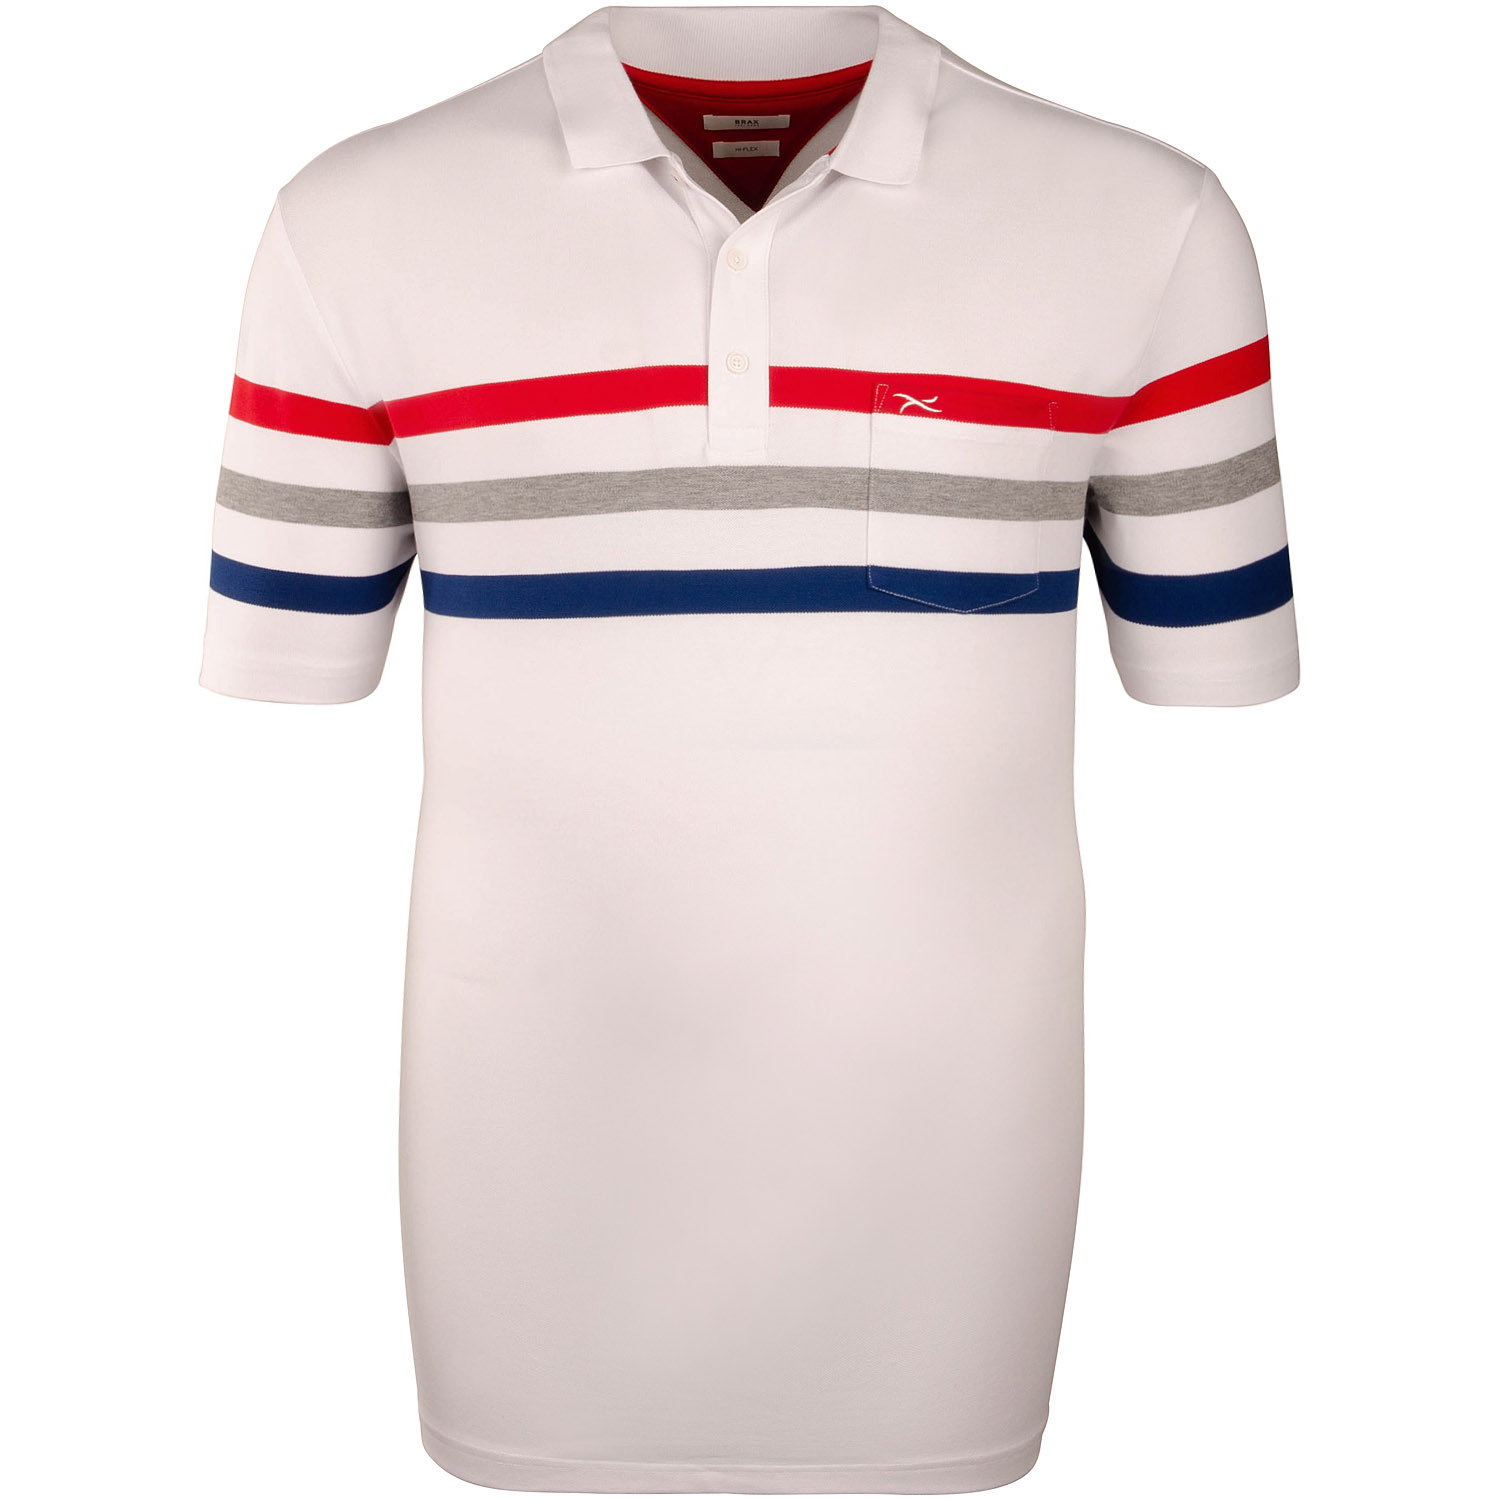 wholesale outlet unique design really comfortable BRAX Poloshirt weiß